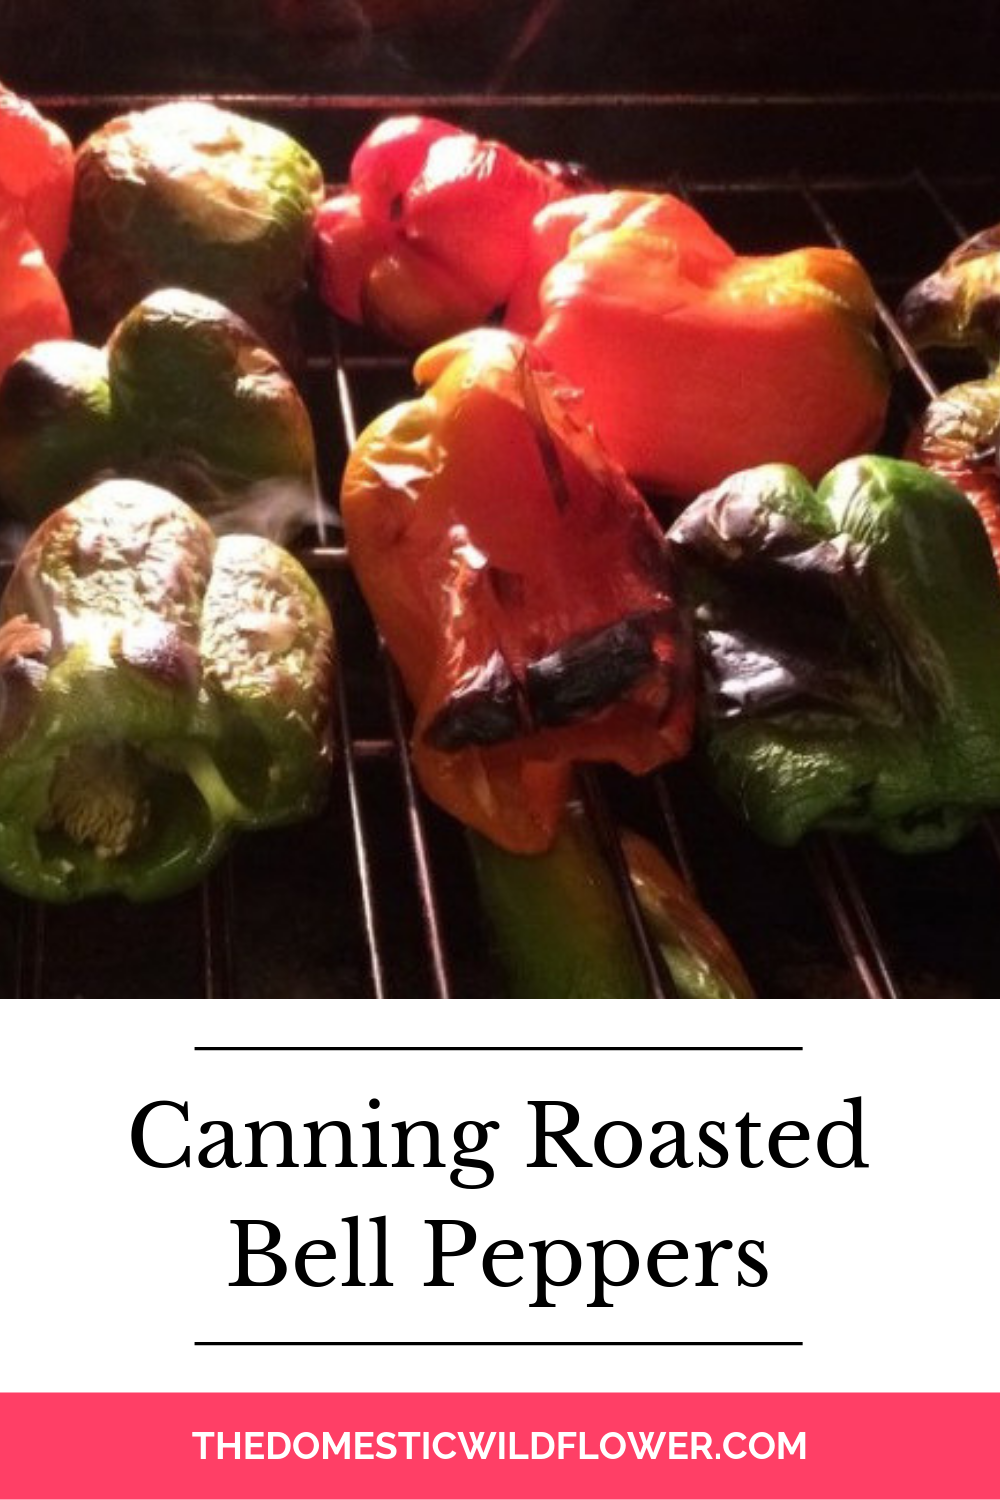 Canning Roasted Bell Peppers #bellpeppers